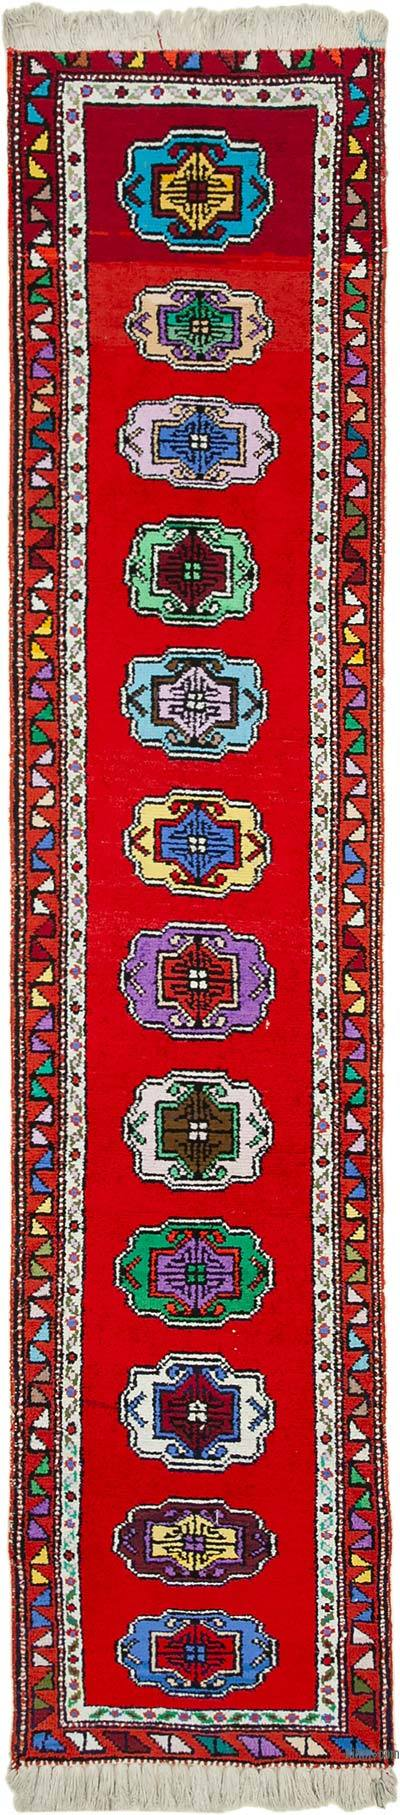 "Vintage Turkish Runner Rug - 2' 7"" x 12' 2"" (31 in. x 146 in.)"